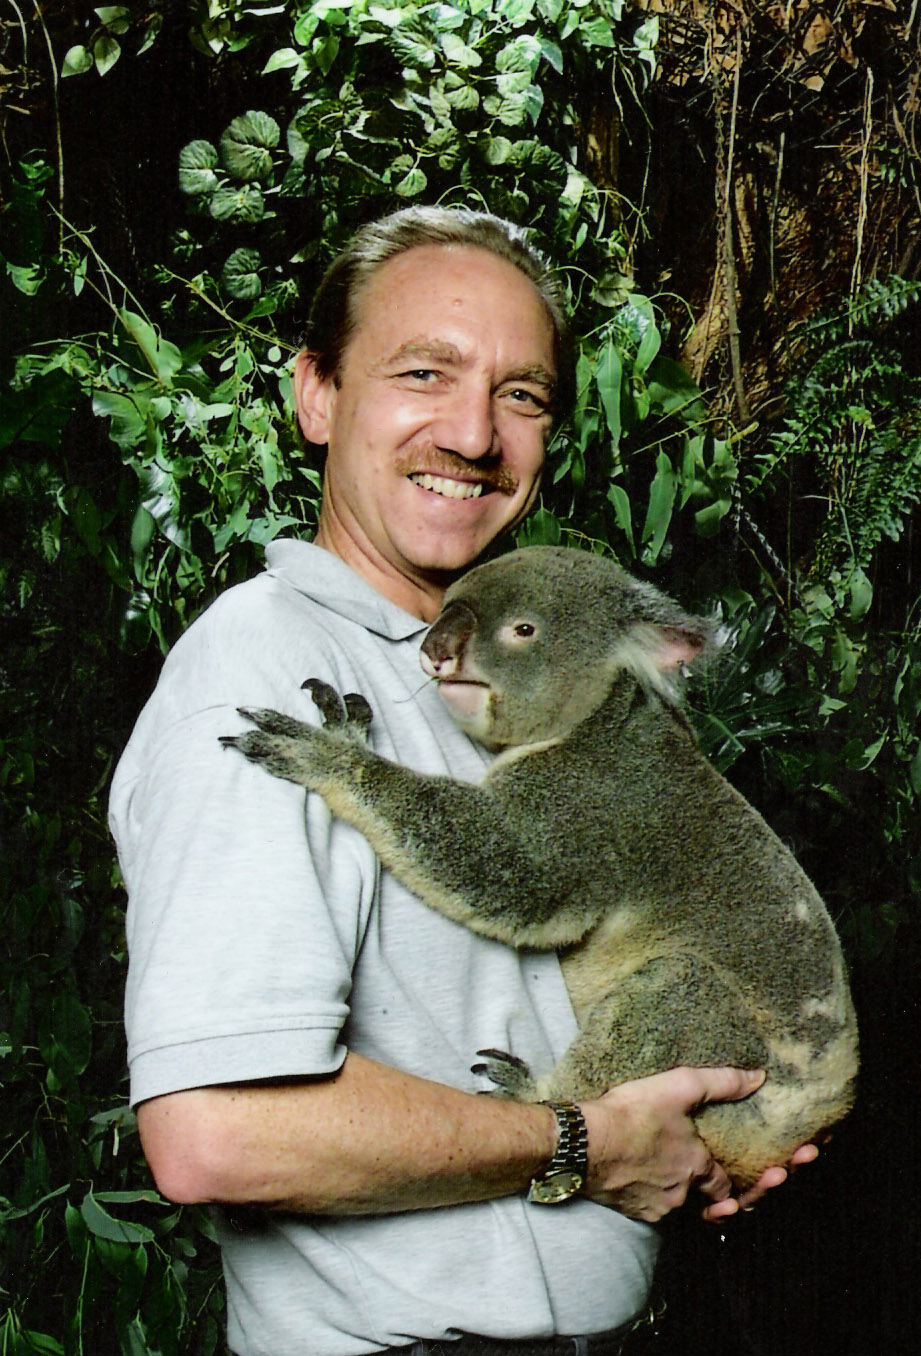 picture of Anson holding koala